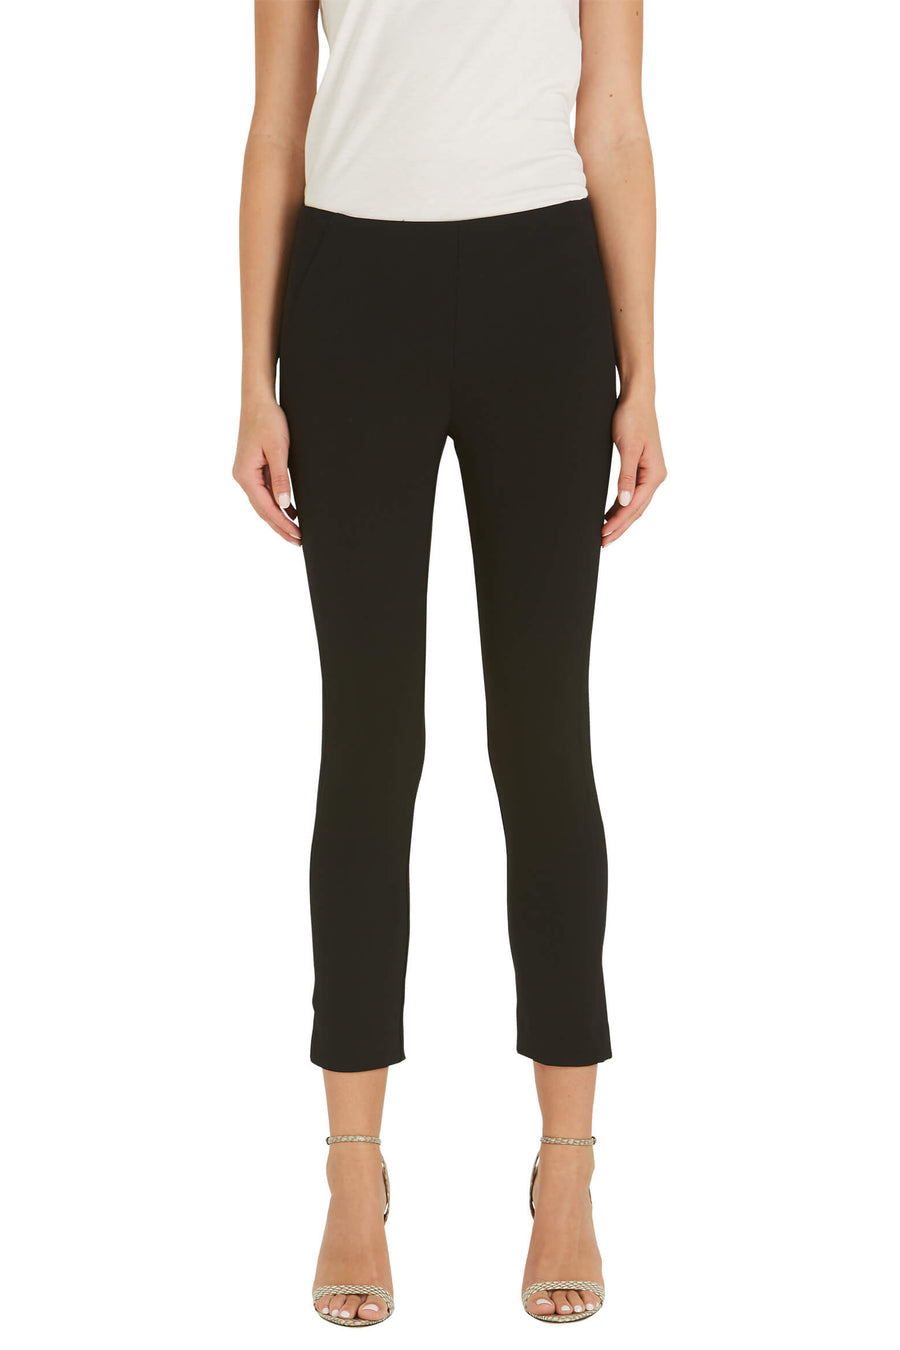 Veronica Beard Zip Back Scuba Pant in Black from The New Trend